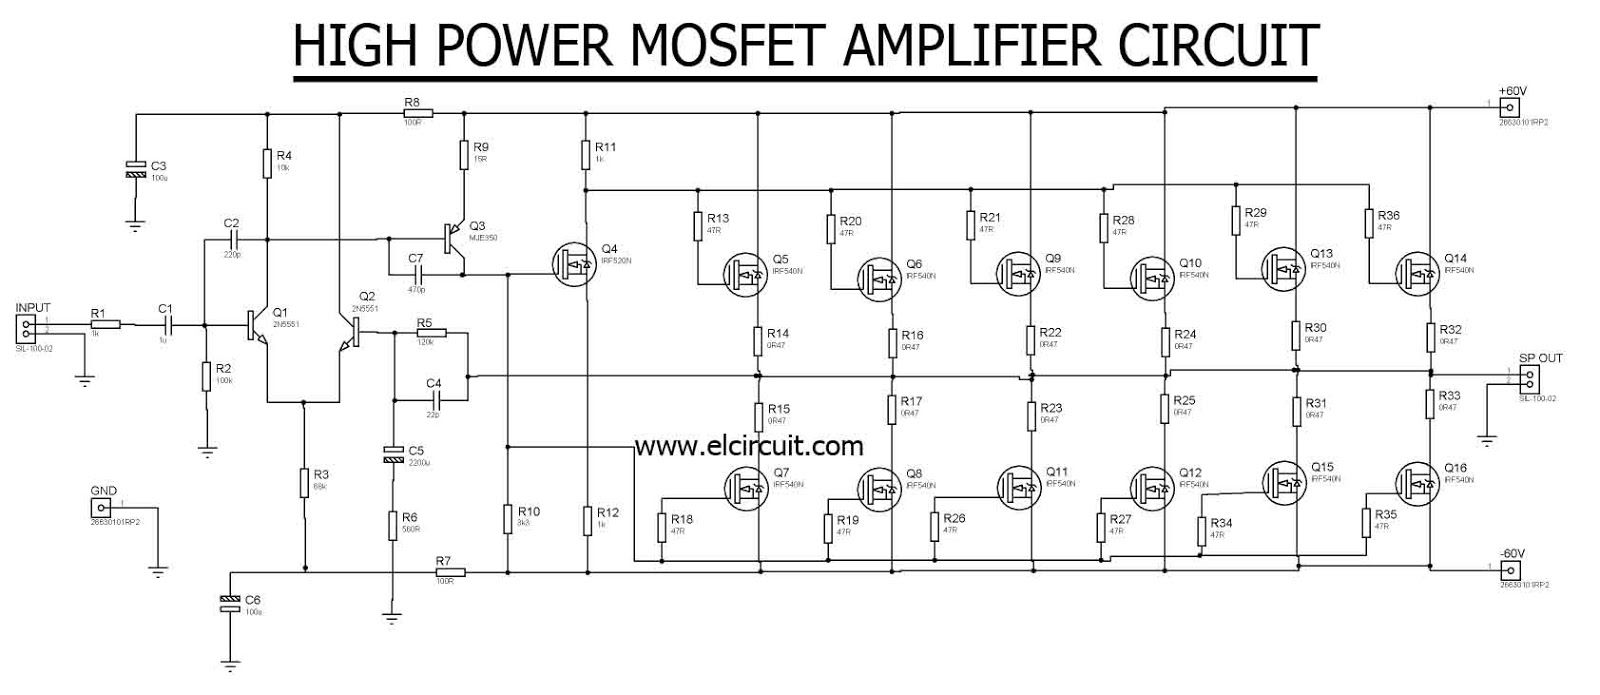 hight resolution of dj amplifier wiring diagram wiring diagram perfomance dj amp wiring diagram wiring diagram dj amplifier wiring